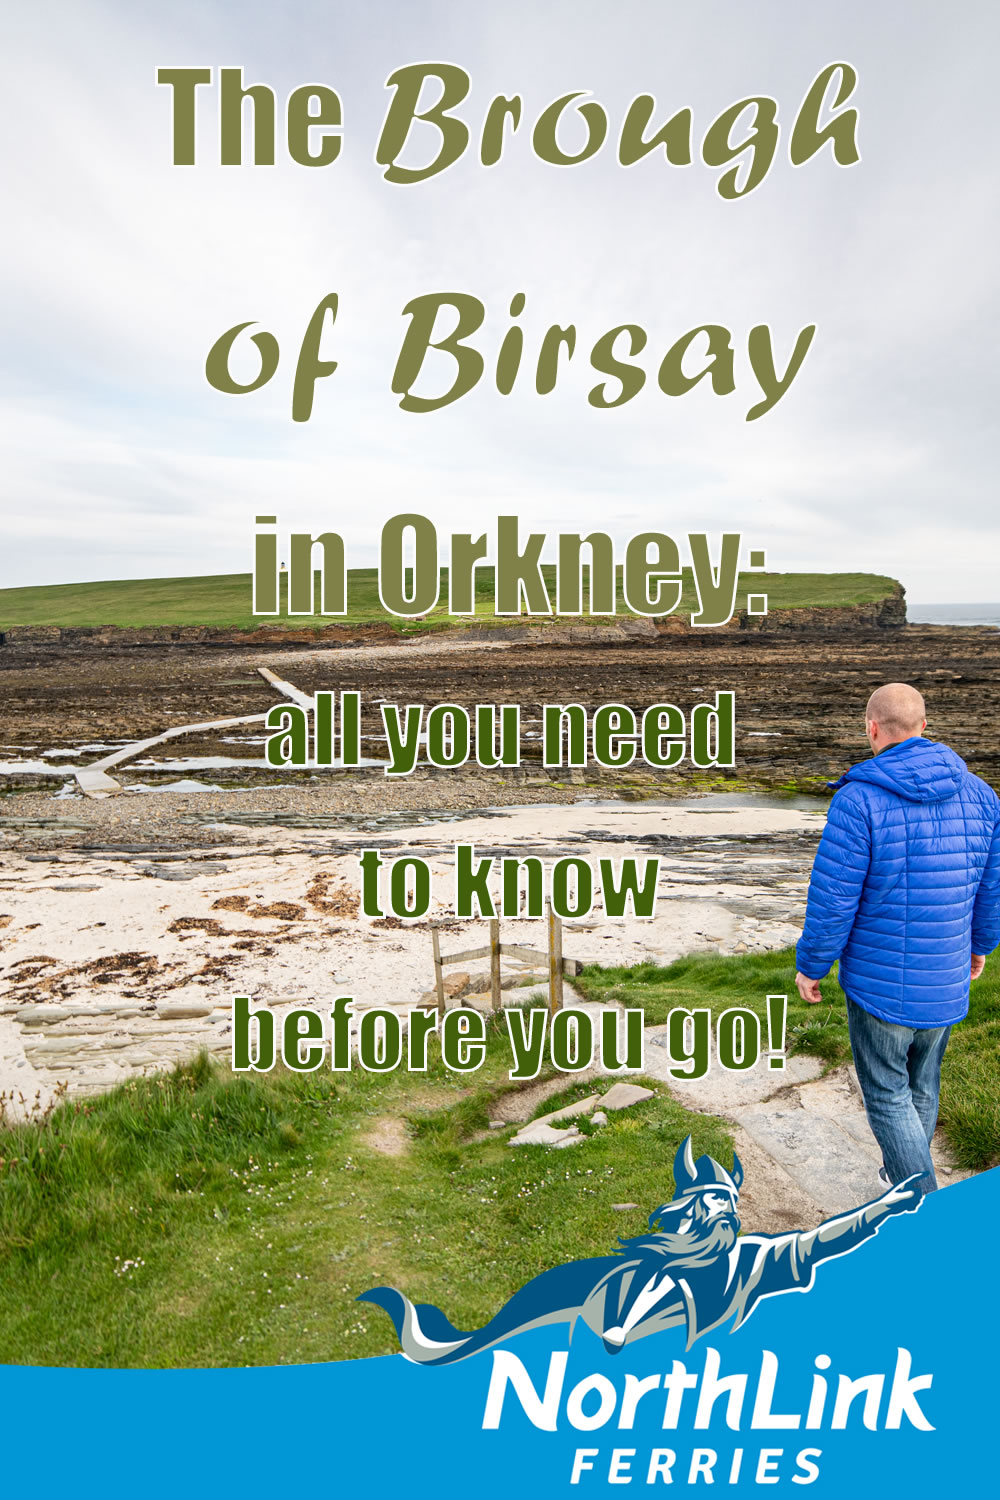 The Brough of Birsay in Orkney: all you need to know before you go!